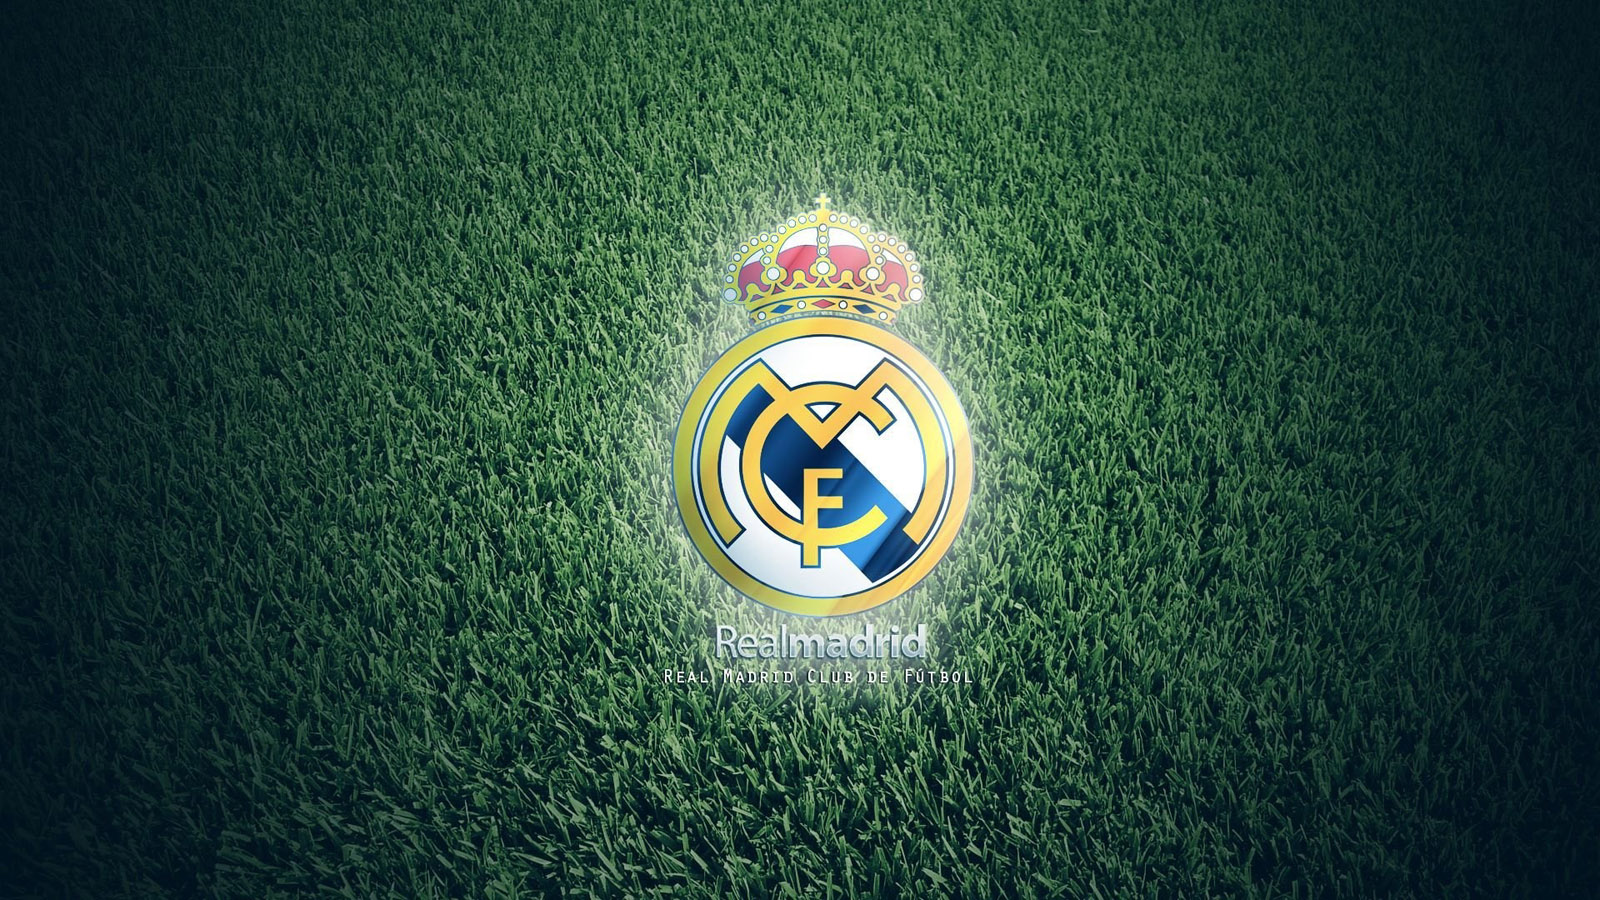 Real Madrid wallpaper HD